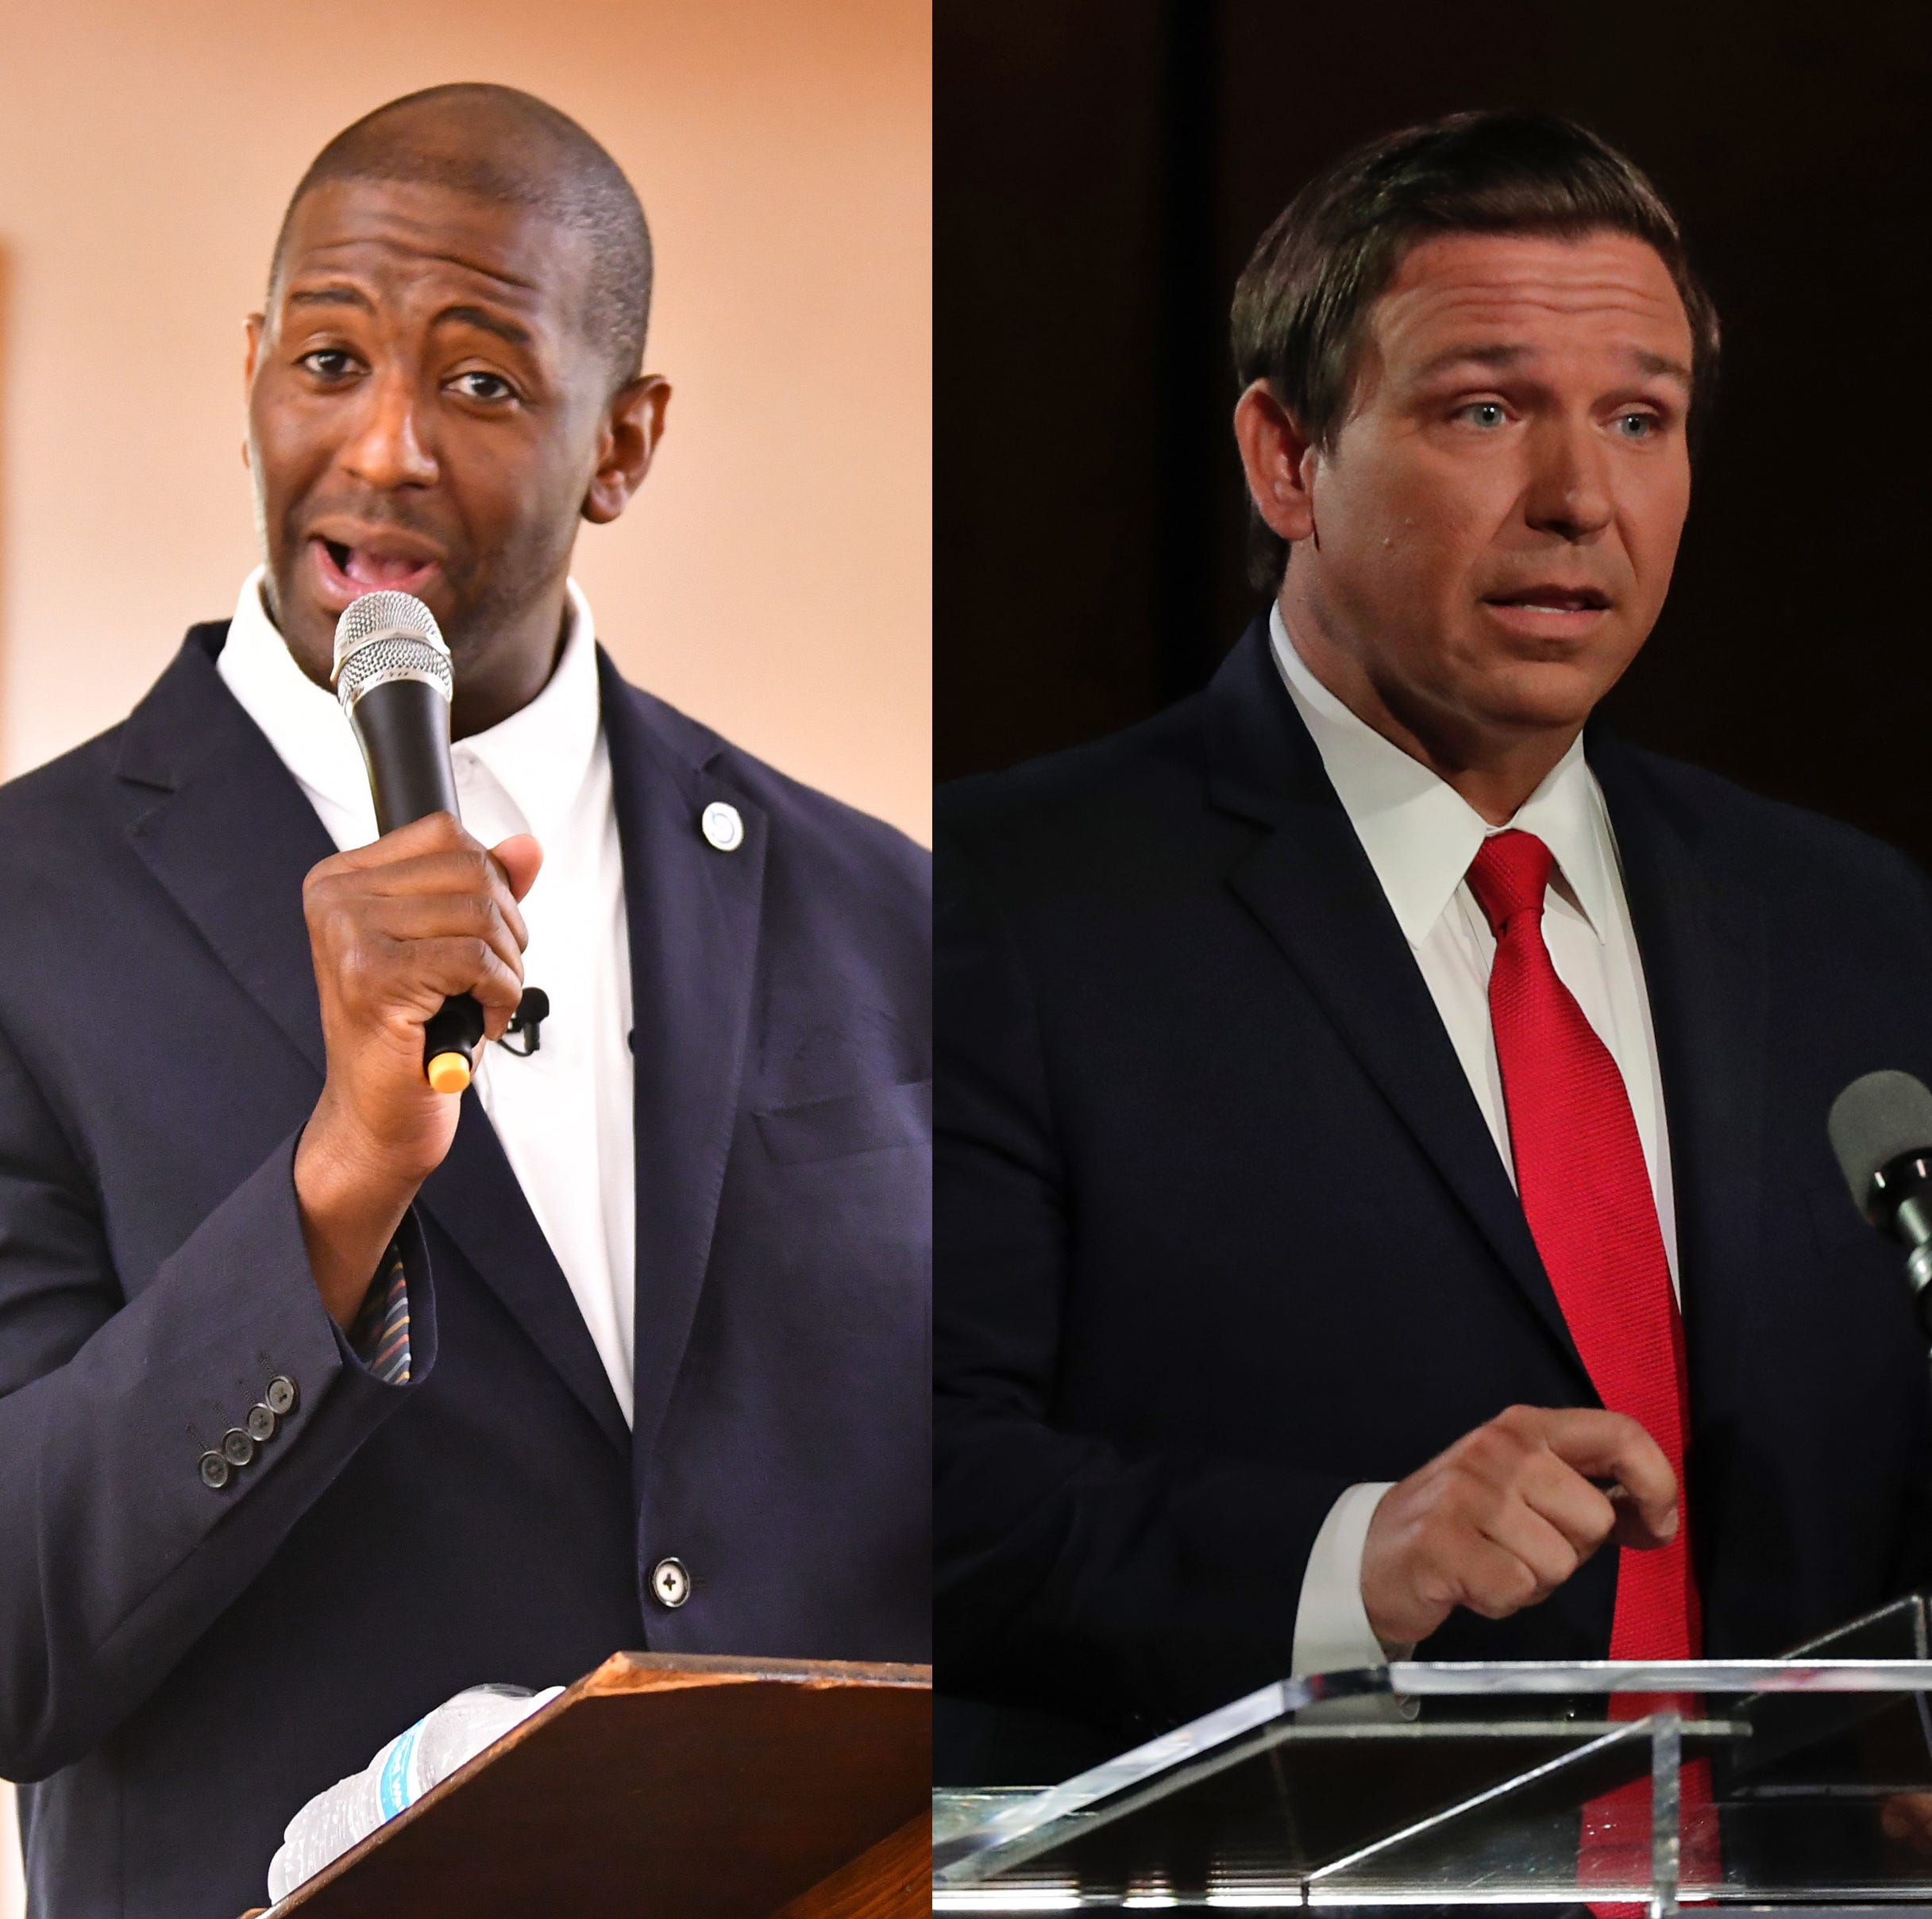 GOP's Ron DeSantis and Democrat Andrew Gillum clash during televised Florida governor debate